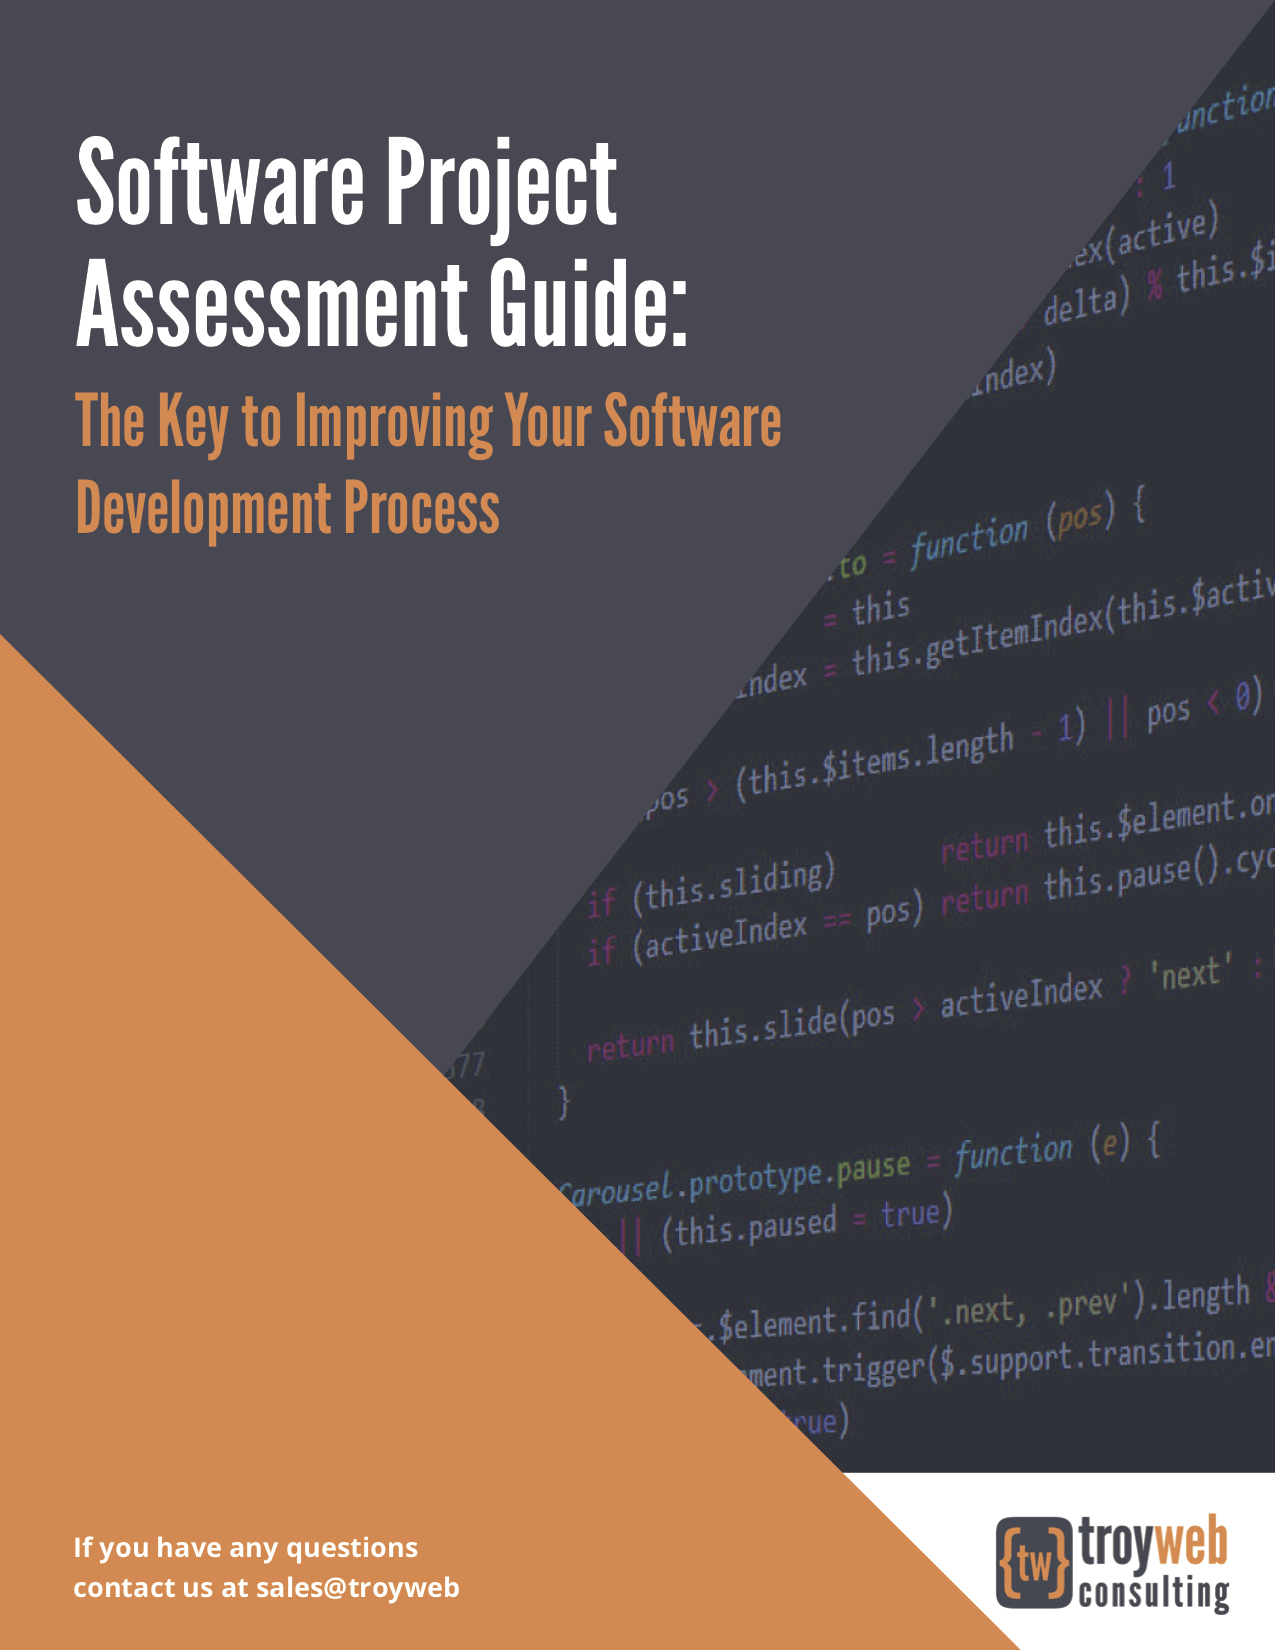 Troy Web Software Assessment Guide image of the Cover